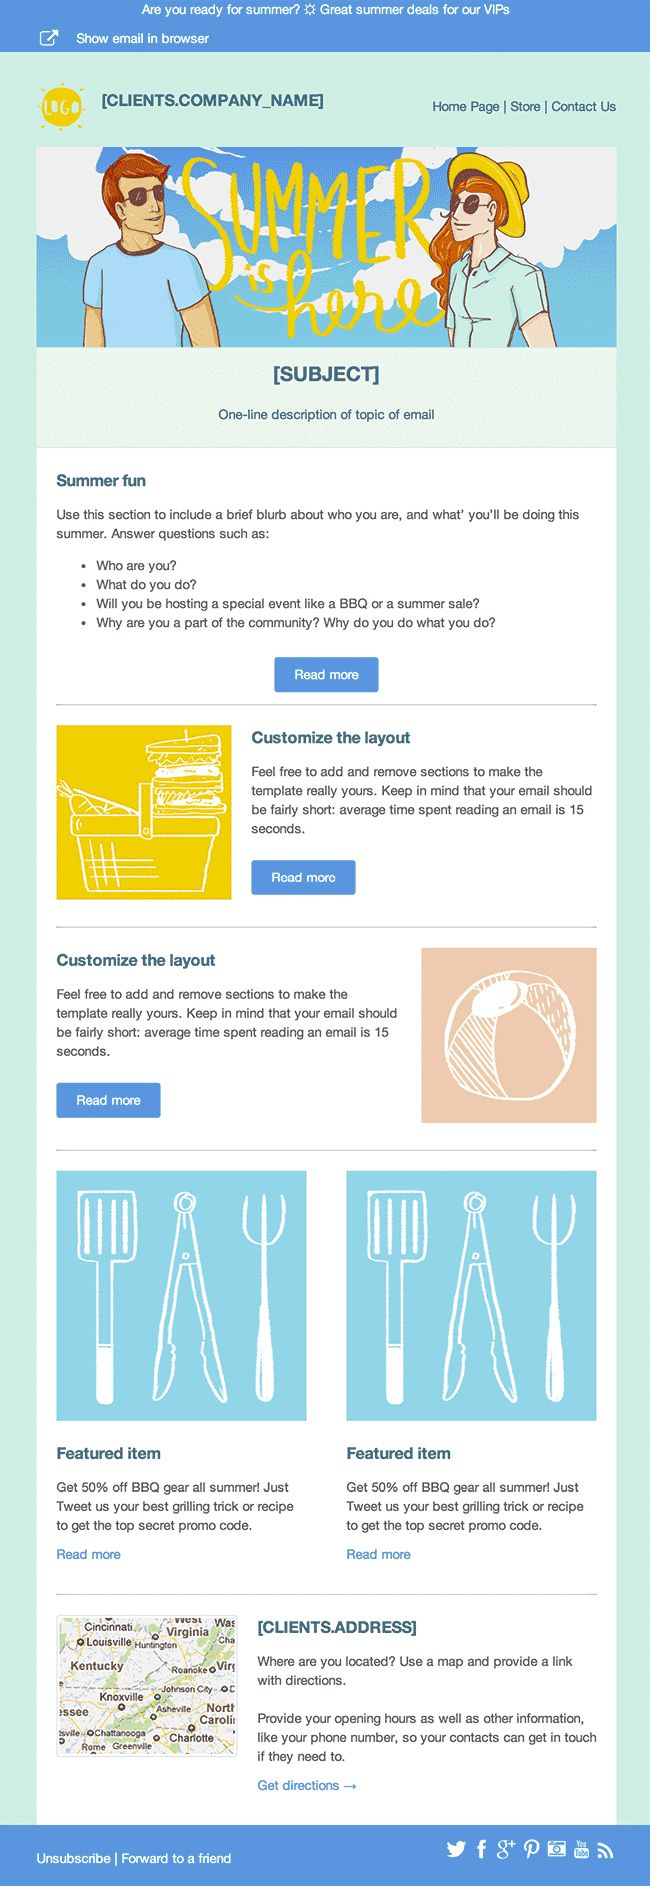 free summer newsletter template cakemail makes it easy to send